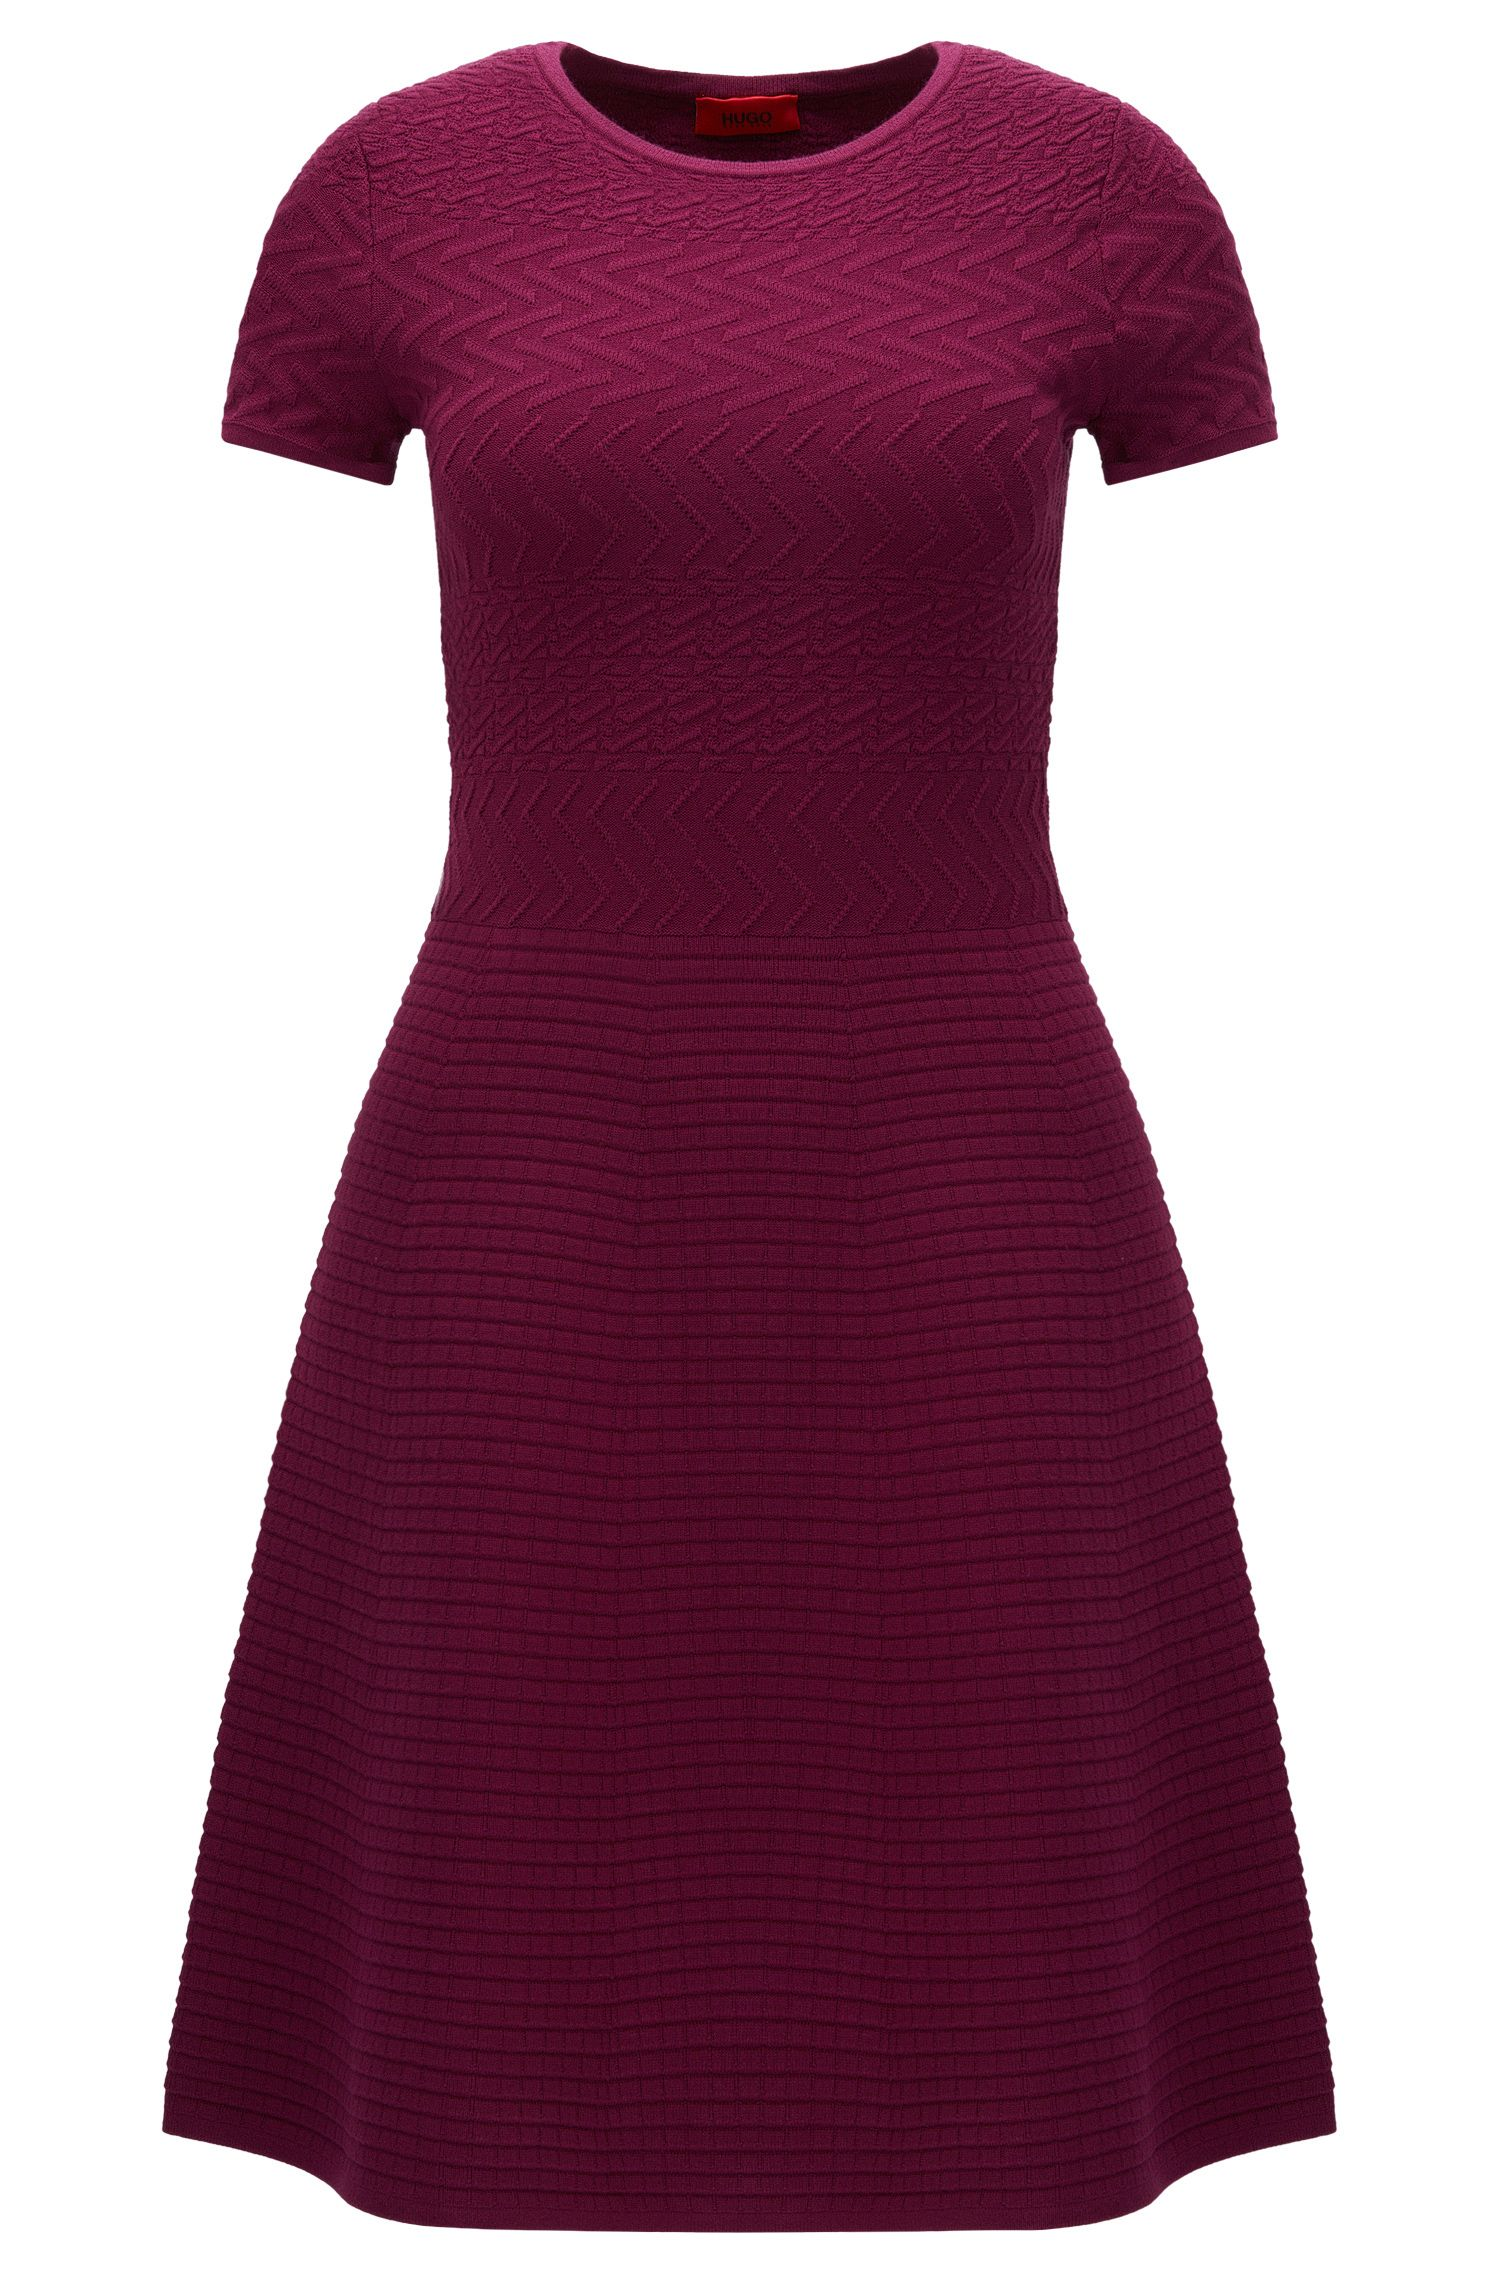 'Somaria' | Patterned A-line Sweater Dress